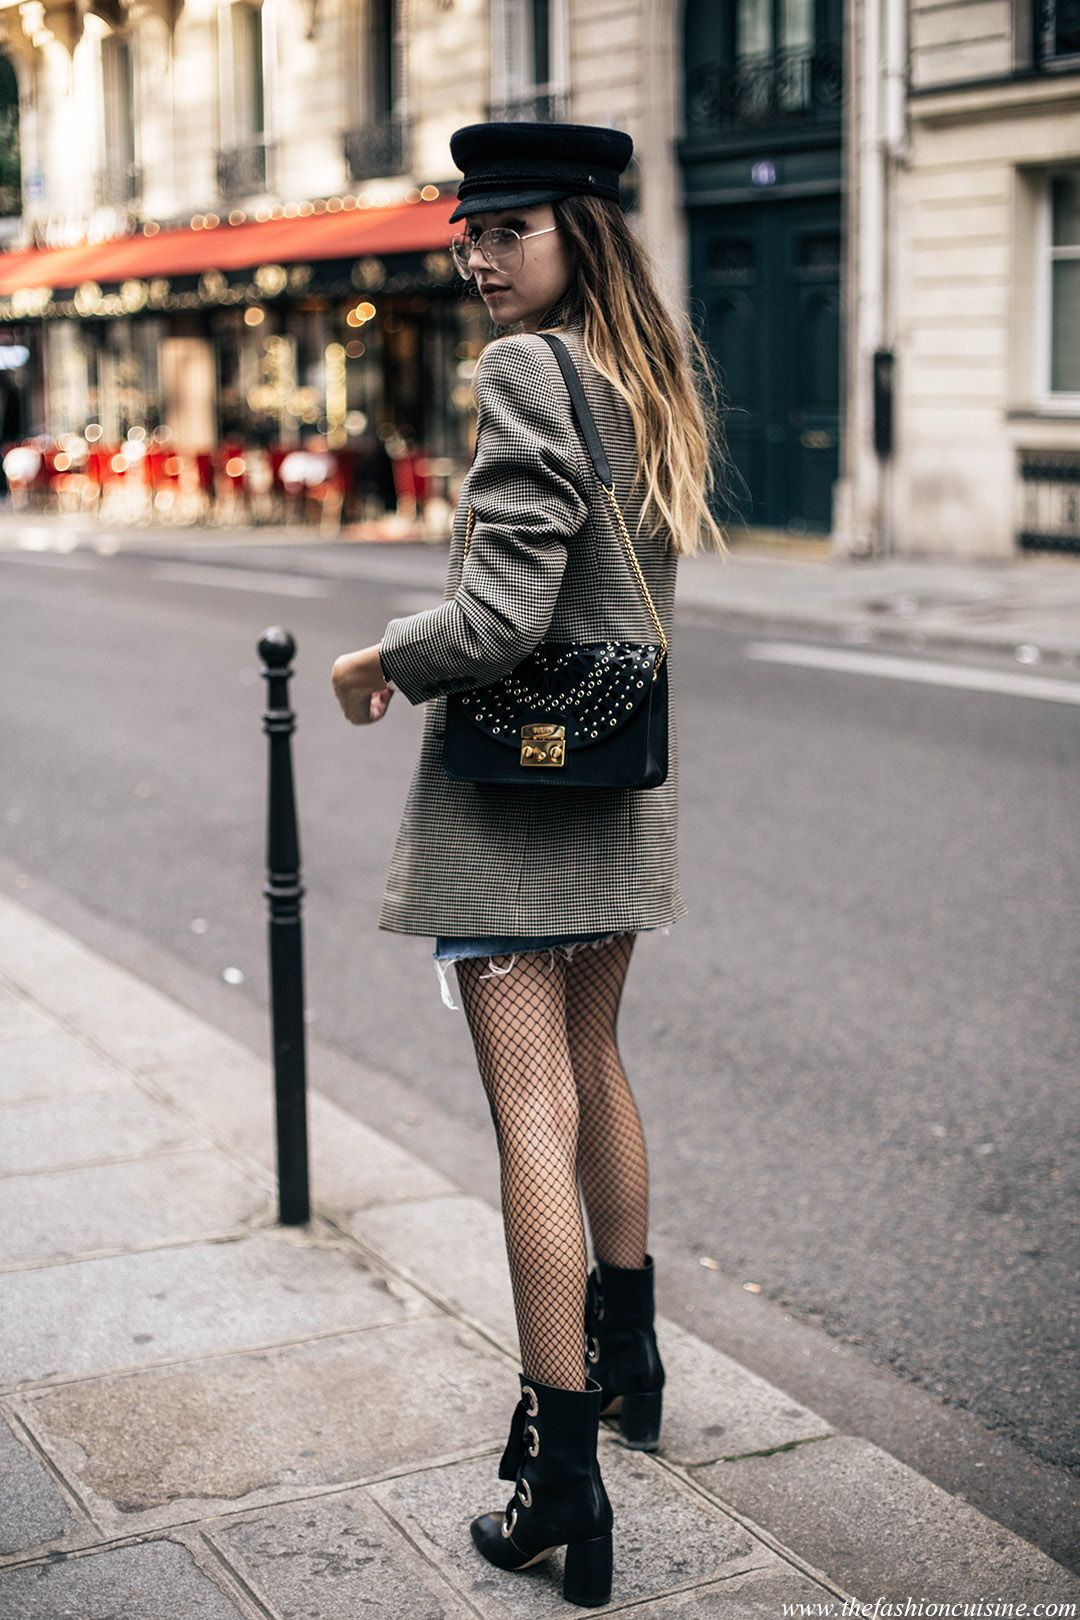 Tights Fishnet are in style for